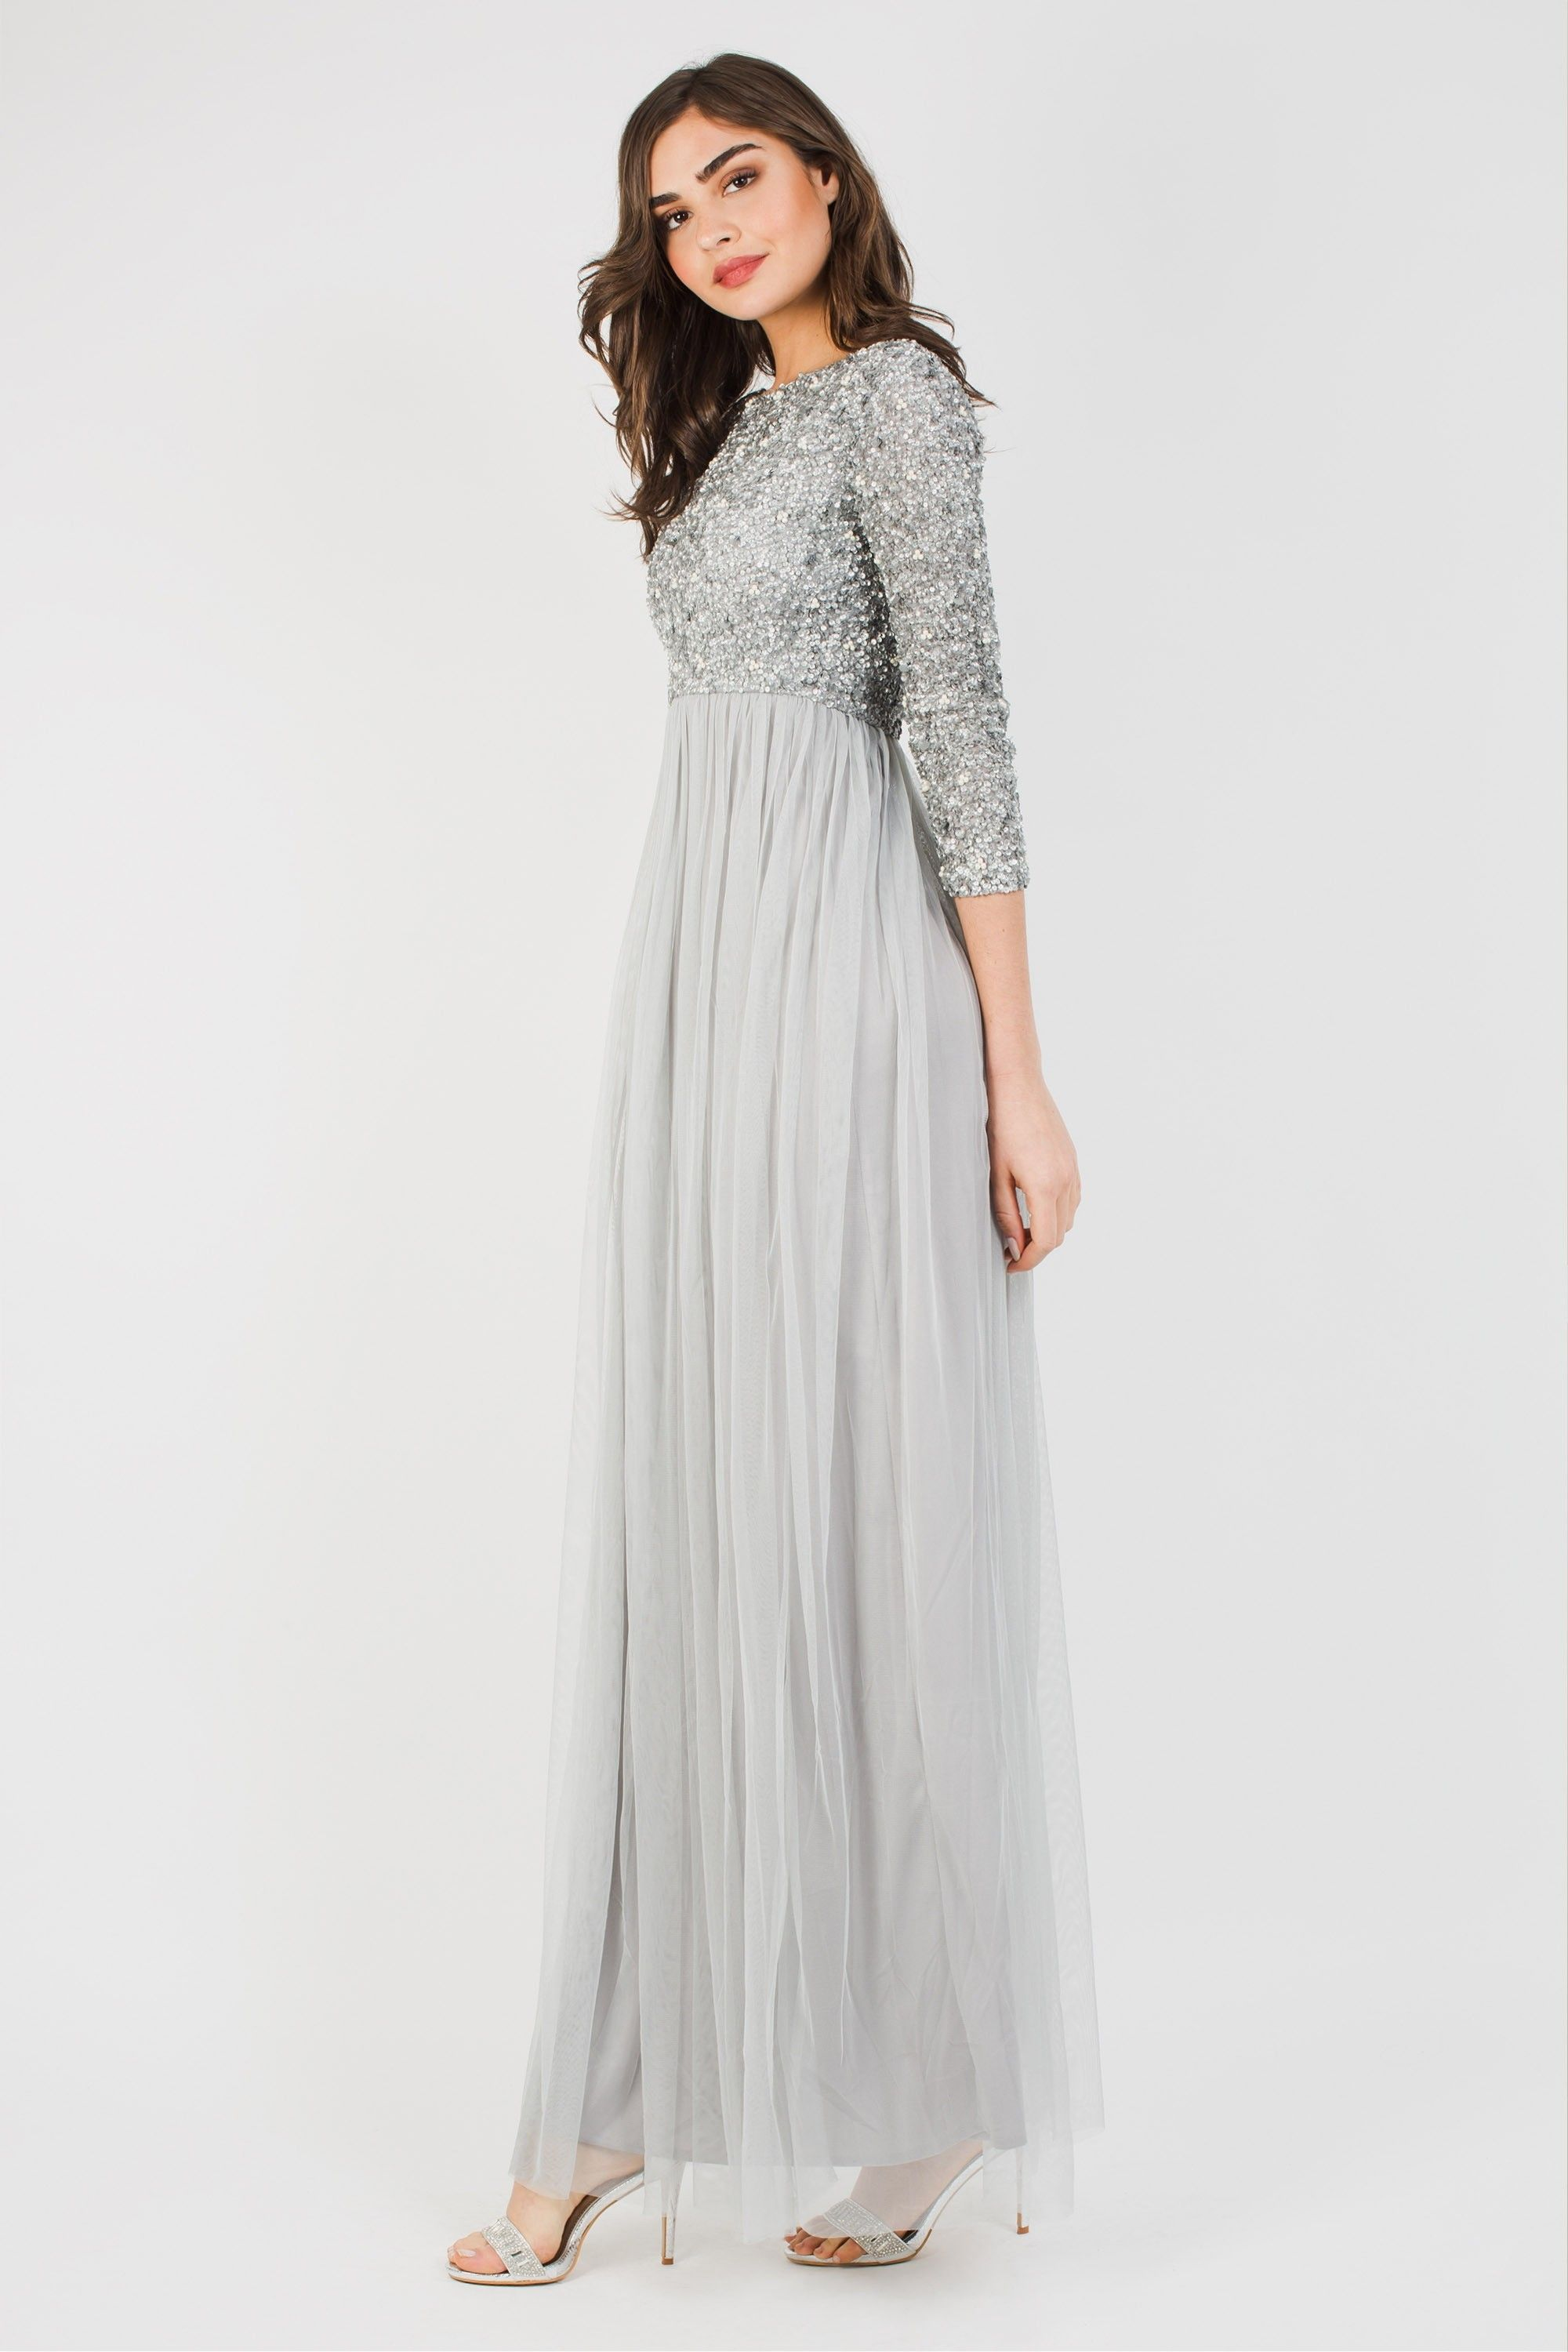 e92115dfa3db LACE & BEADS PICASSO 3/4 SLEEVED GREY EMBELLISHED MAXI DRESS | PARTY DRESSES